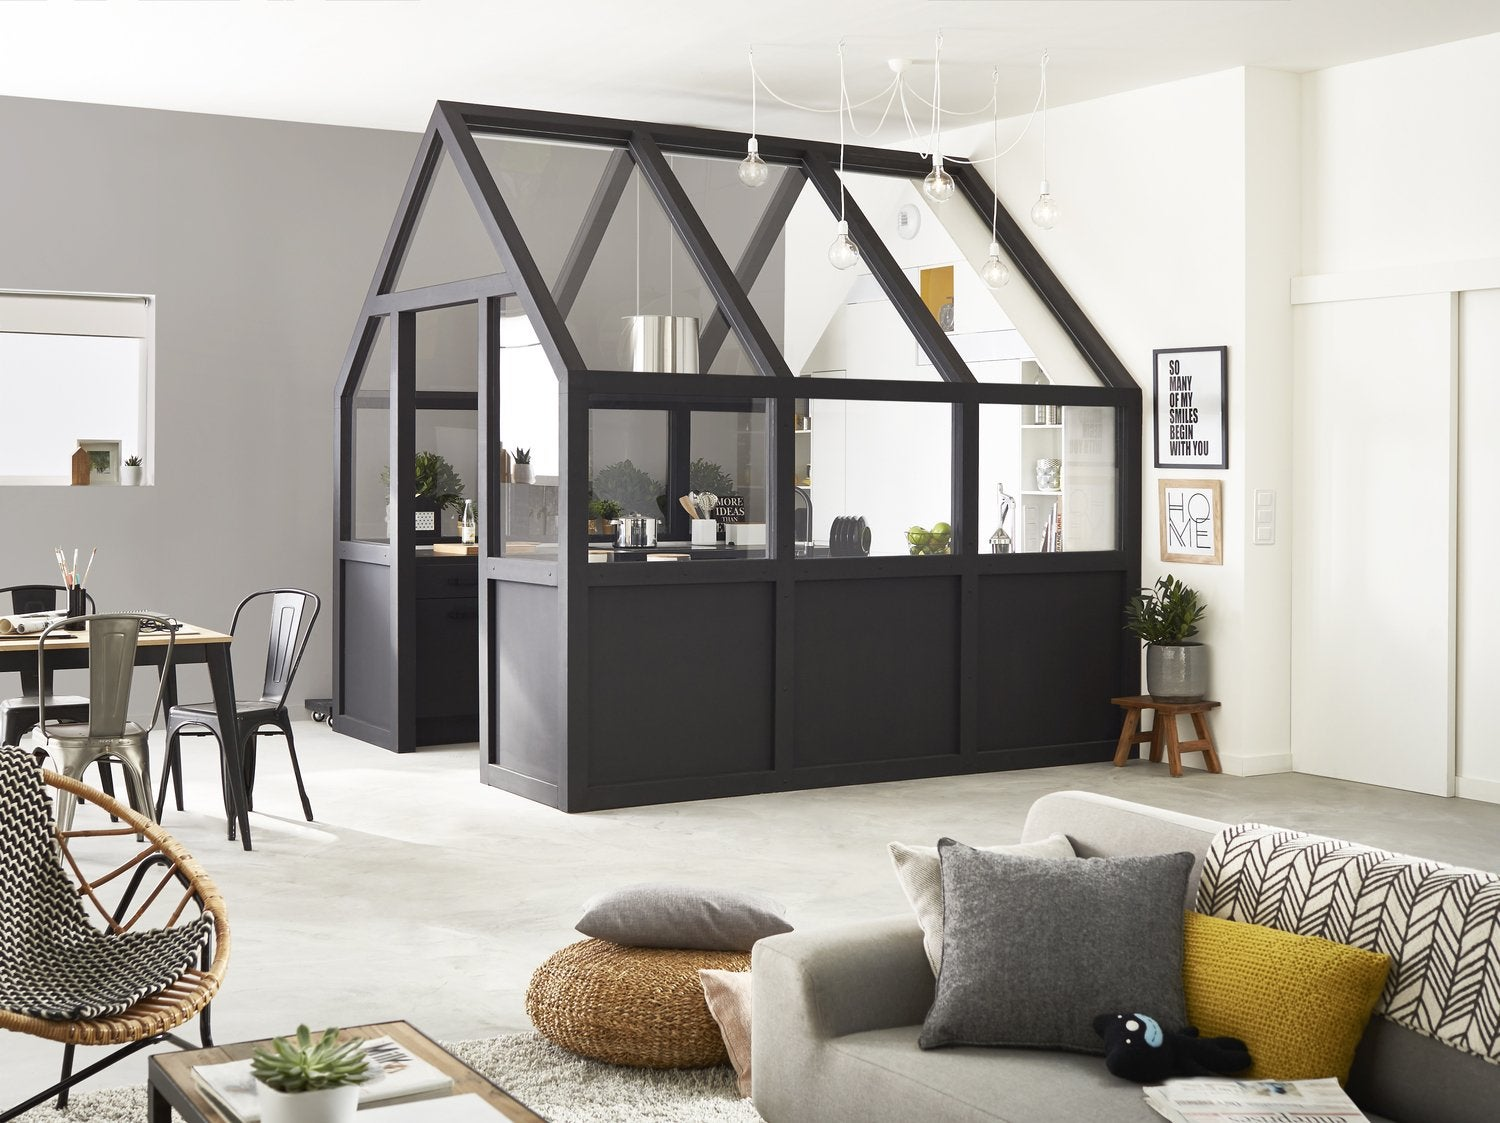 une verri re pour la cuisine leroy merlin. Black Bedroom Furniture Sets. Home Design Ideas